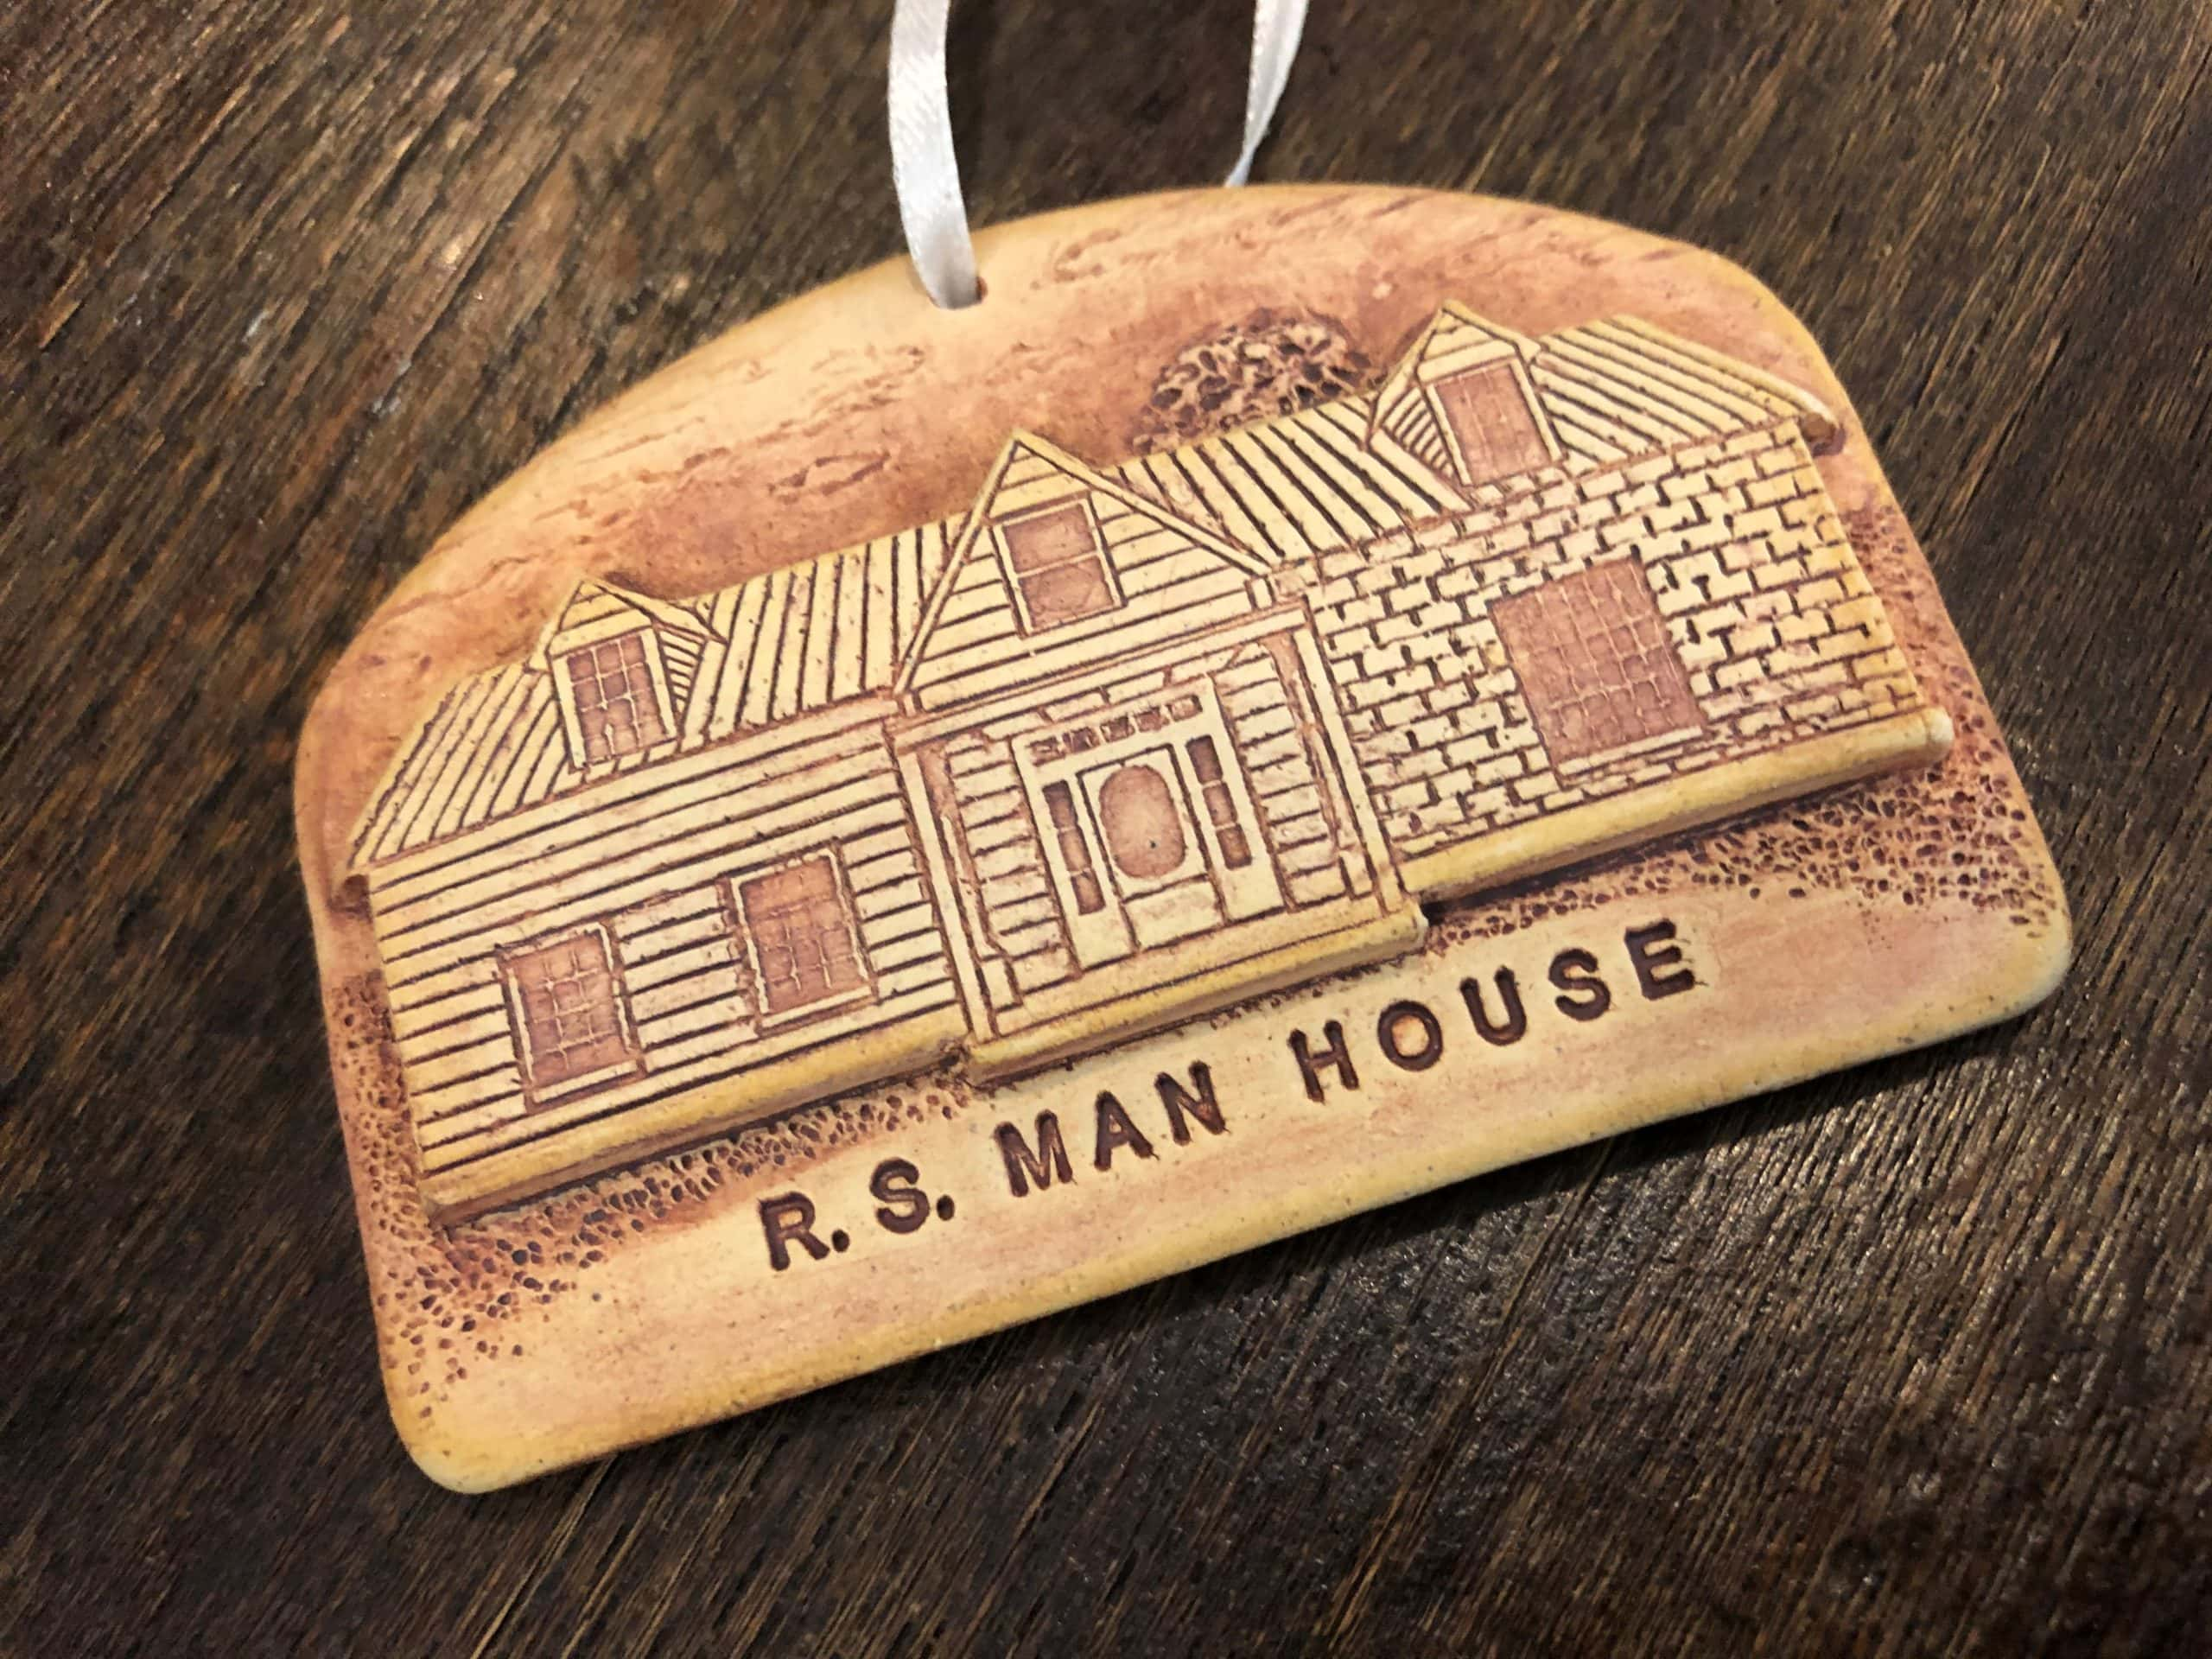 Man House ornament